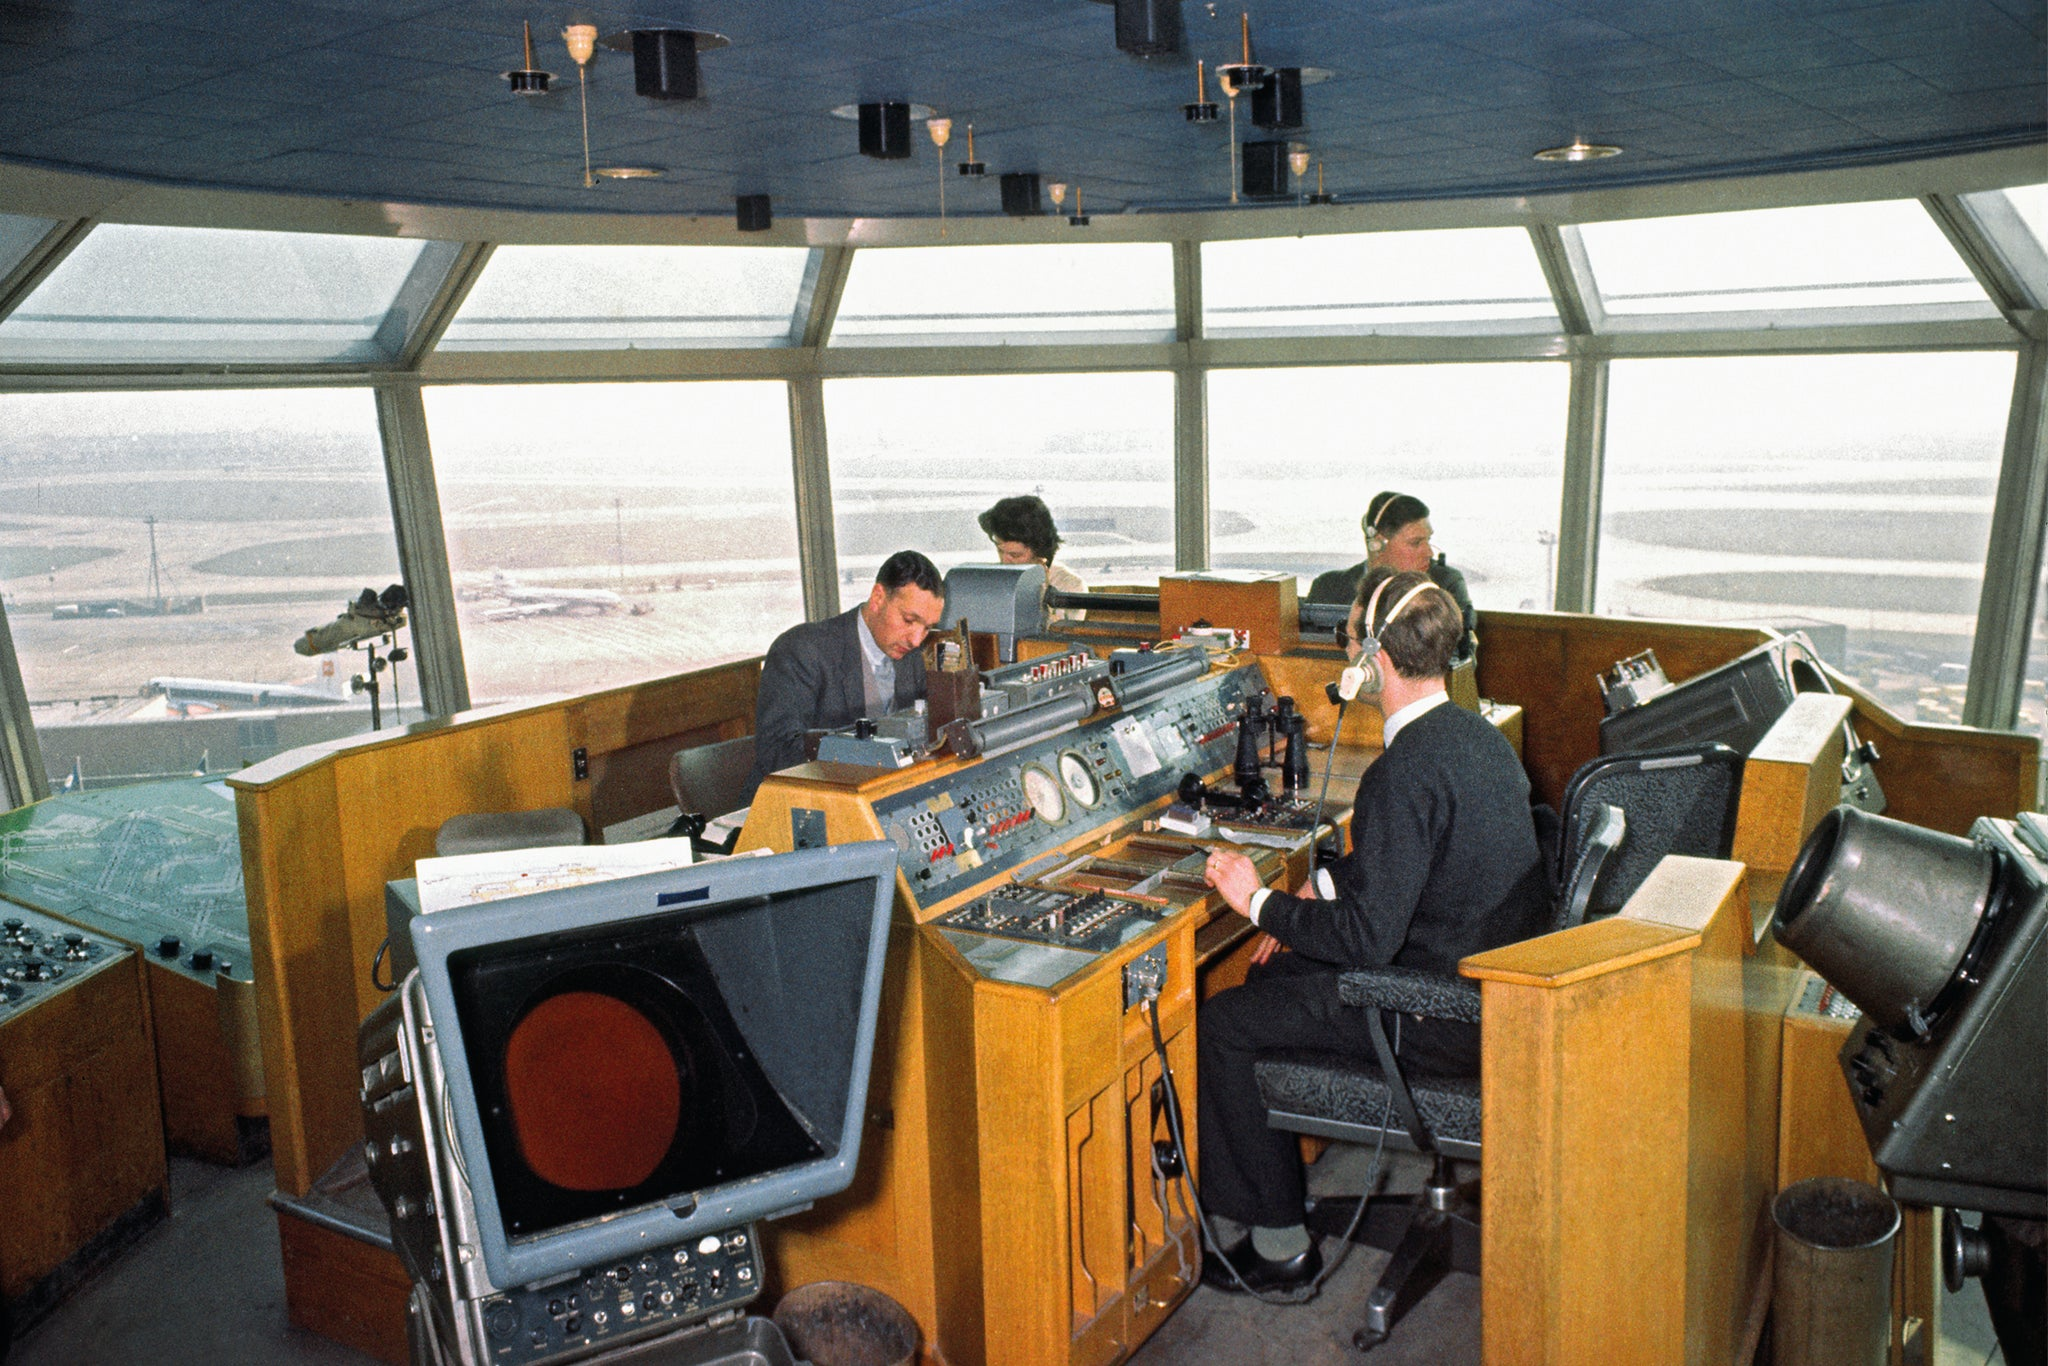 Air traffic control tower in the 1960s